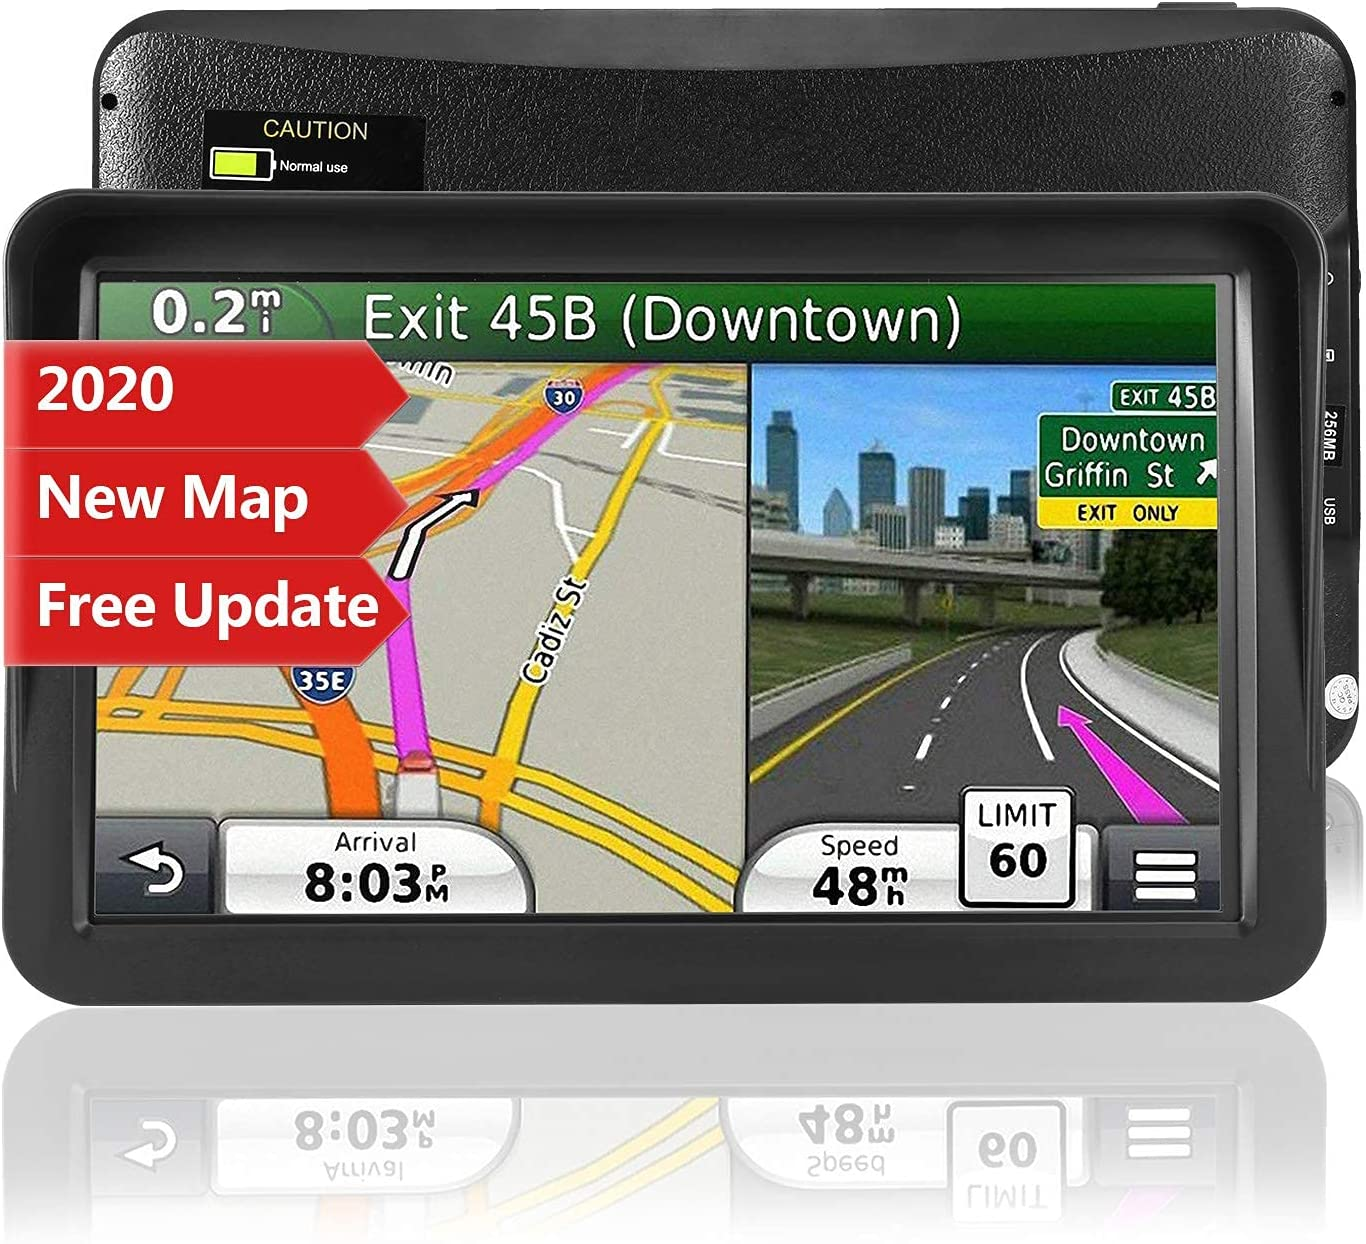 Car GPS Navigation, 9-inch HD Touch Screen Navigation Device Truck 8GB 256MB Navigation with POI High Speed Camera Warning Voice Guide Lane Lifetime Free Map Update (Renewed)